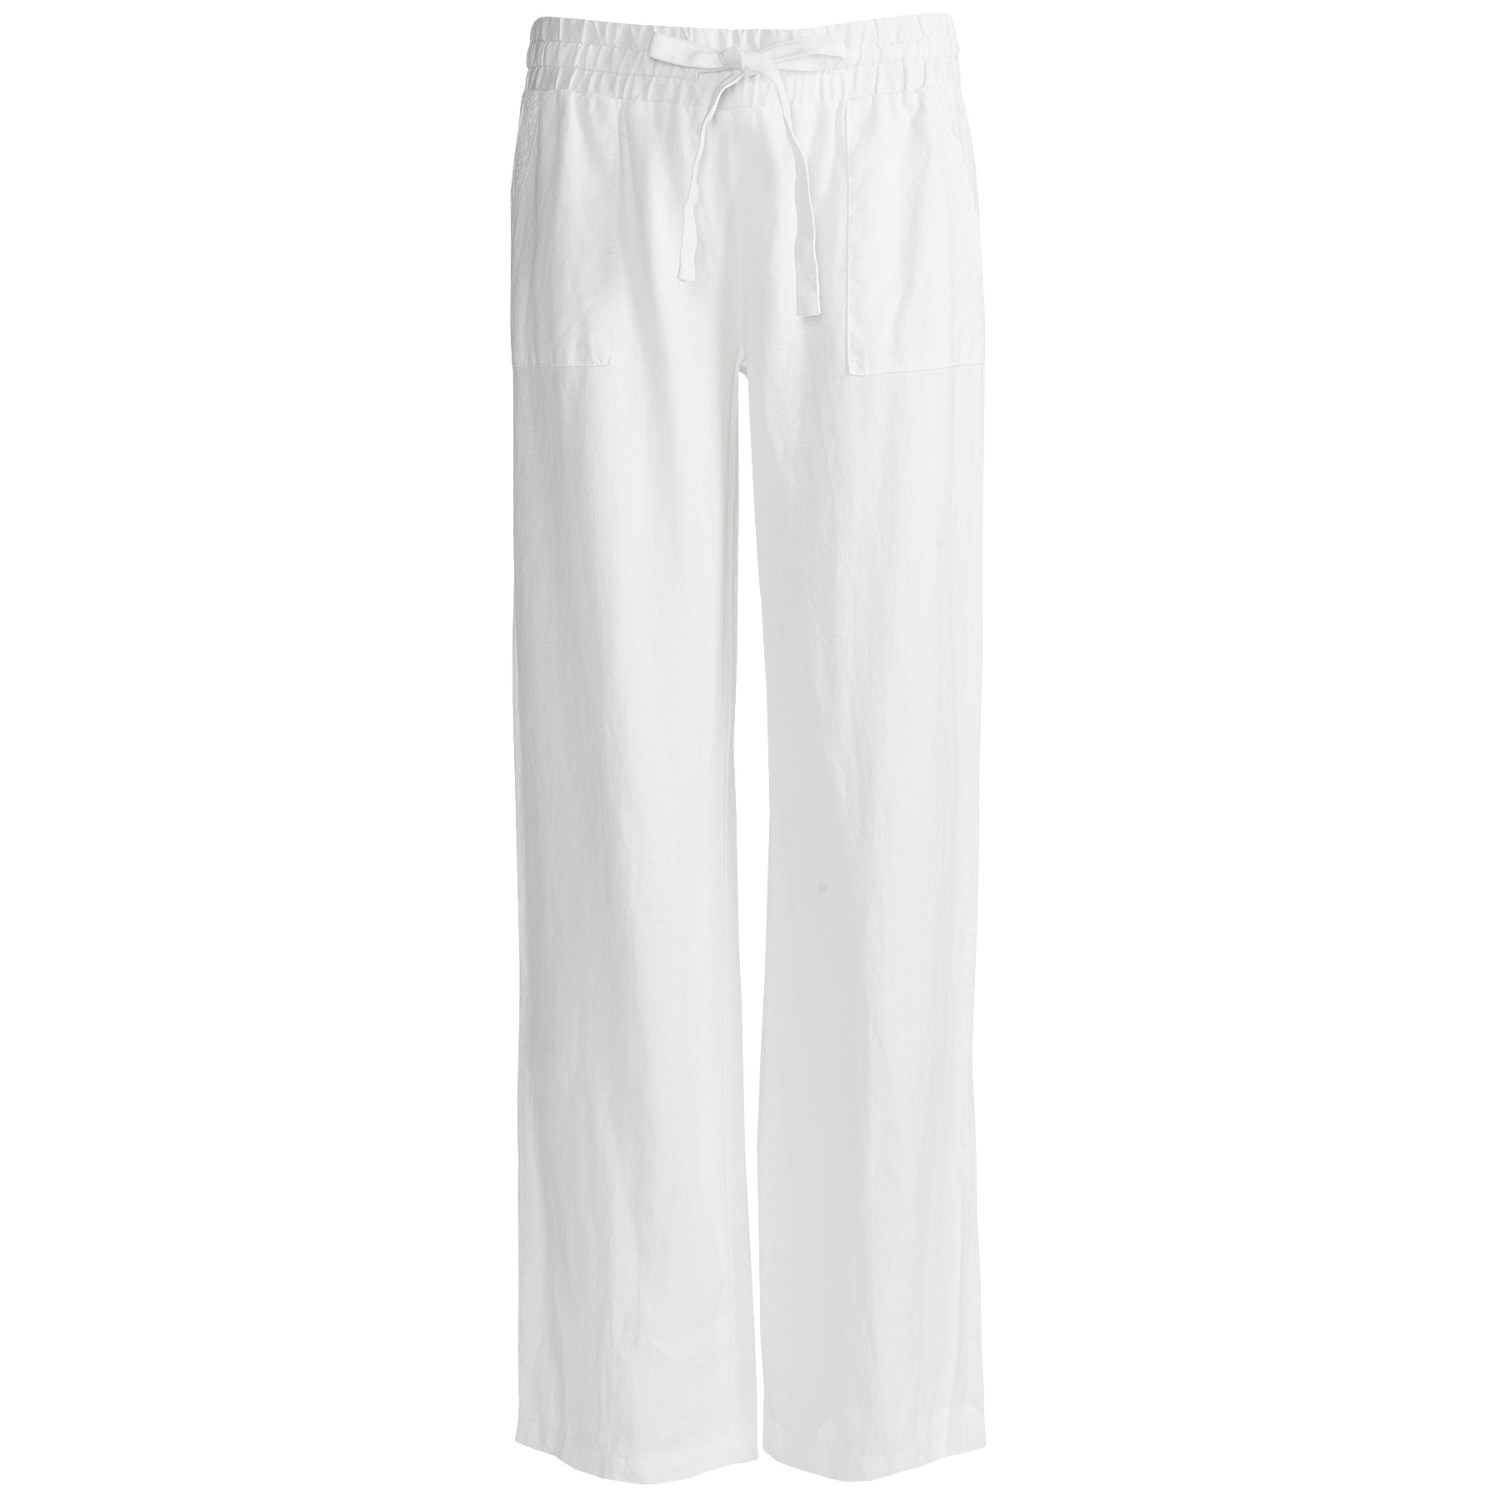 Simple Women Women39s Drawstring Linen Pants  Bright White  Old Navy